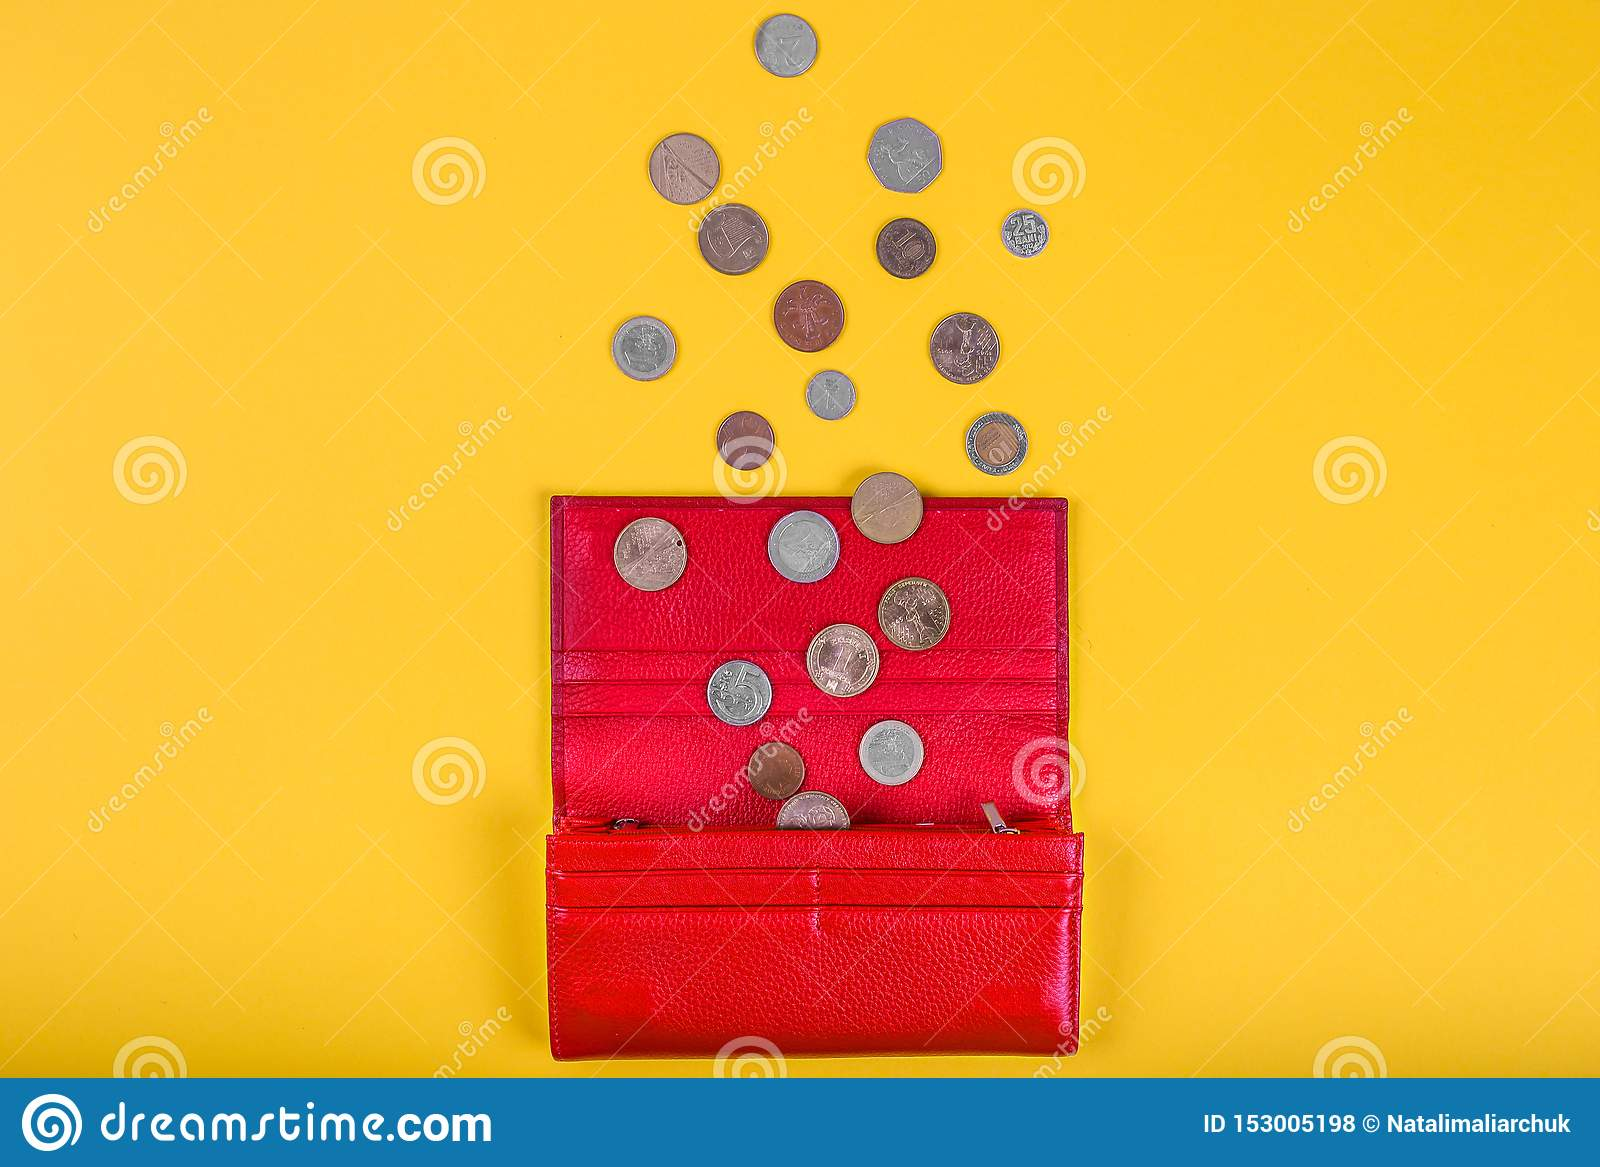 Open Female Red Leather Wallet With Different Coins On Yellow Background With Copy Space, Overhead View